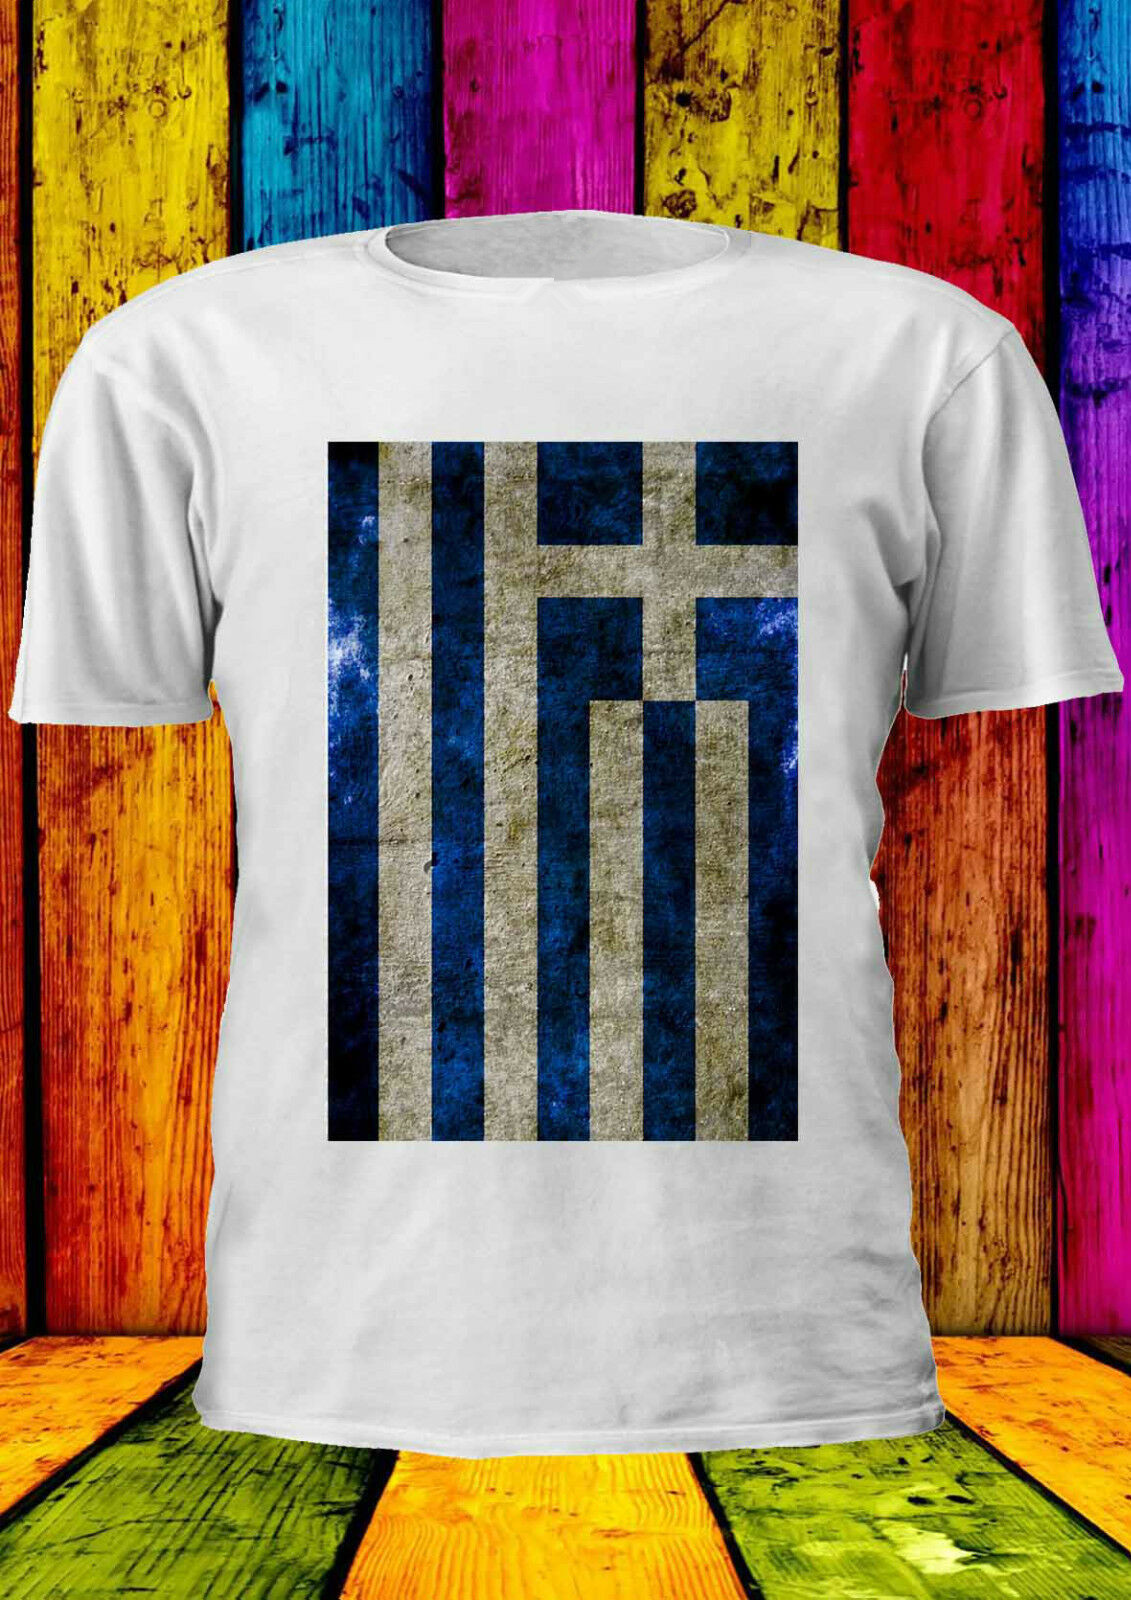 Women's Clothing Tops & Tees Official Website Greek Flag Greece Vintage Athens T-shirt Top Women Gifts Dropshipping Bracing Up The Whole System And Strengthening It